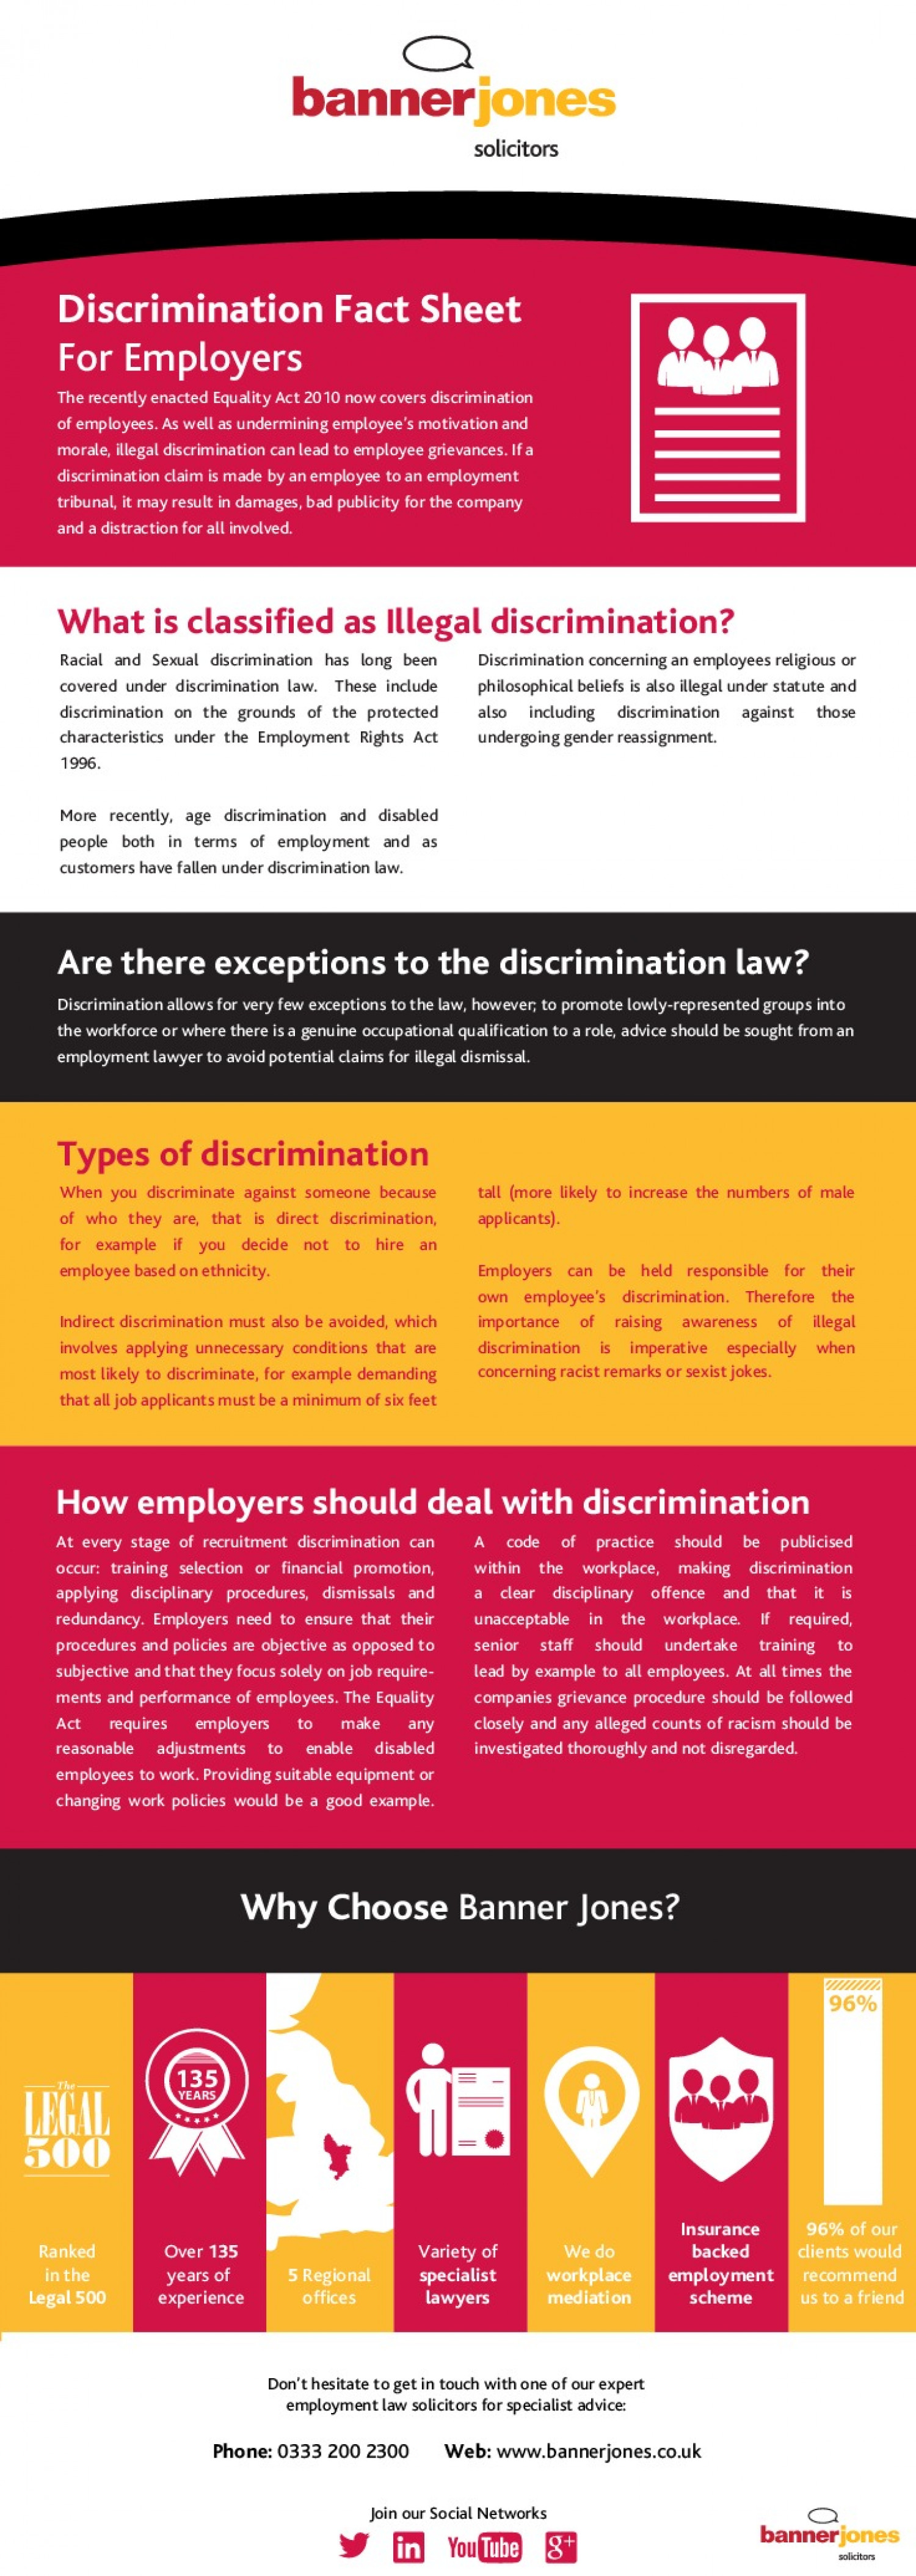 Discrimination in the Workplace - An Employers' Guide Infographic